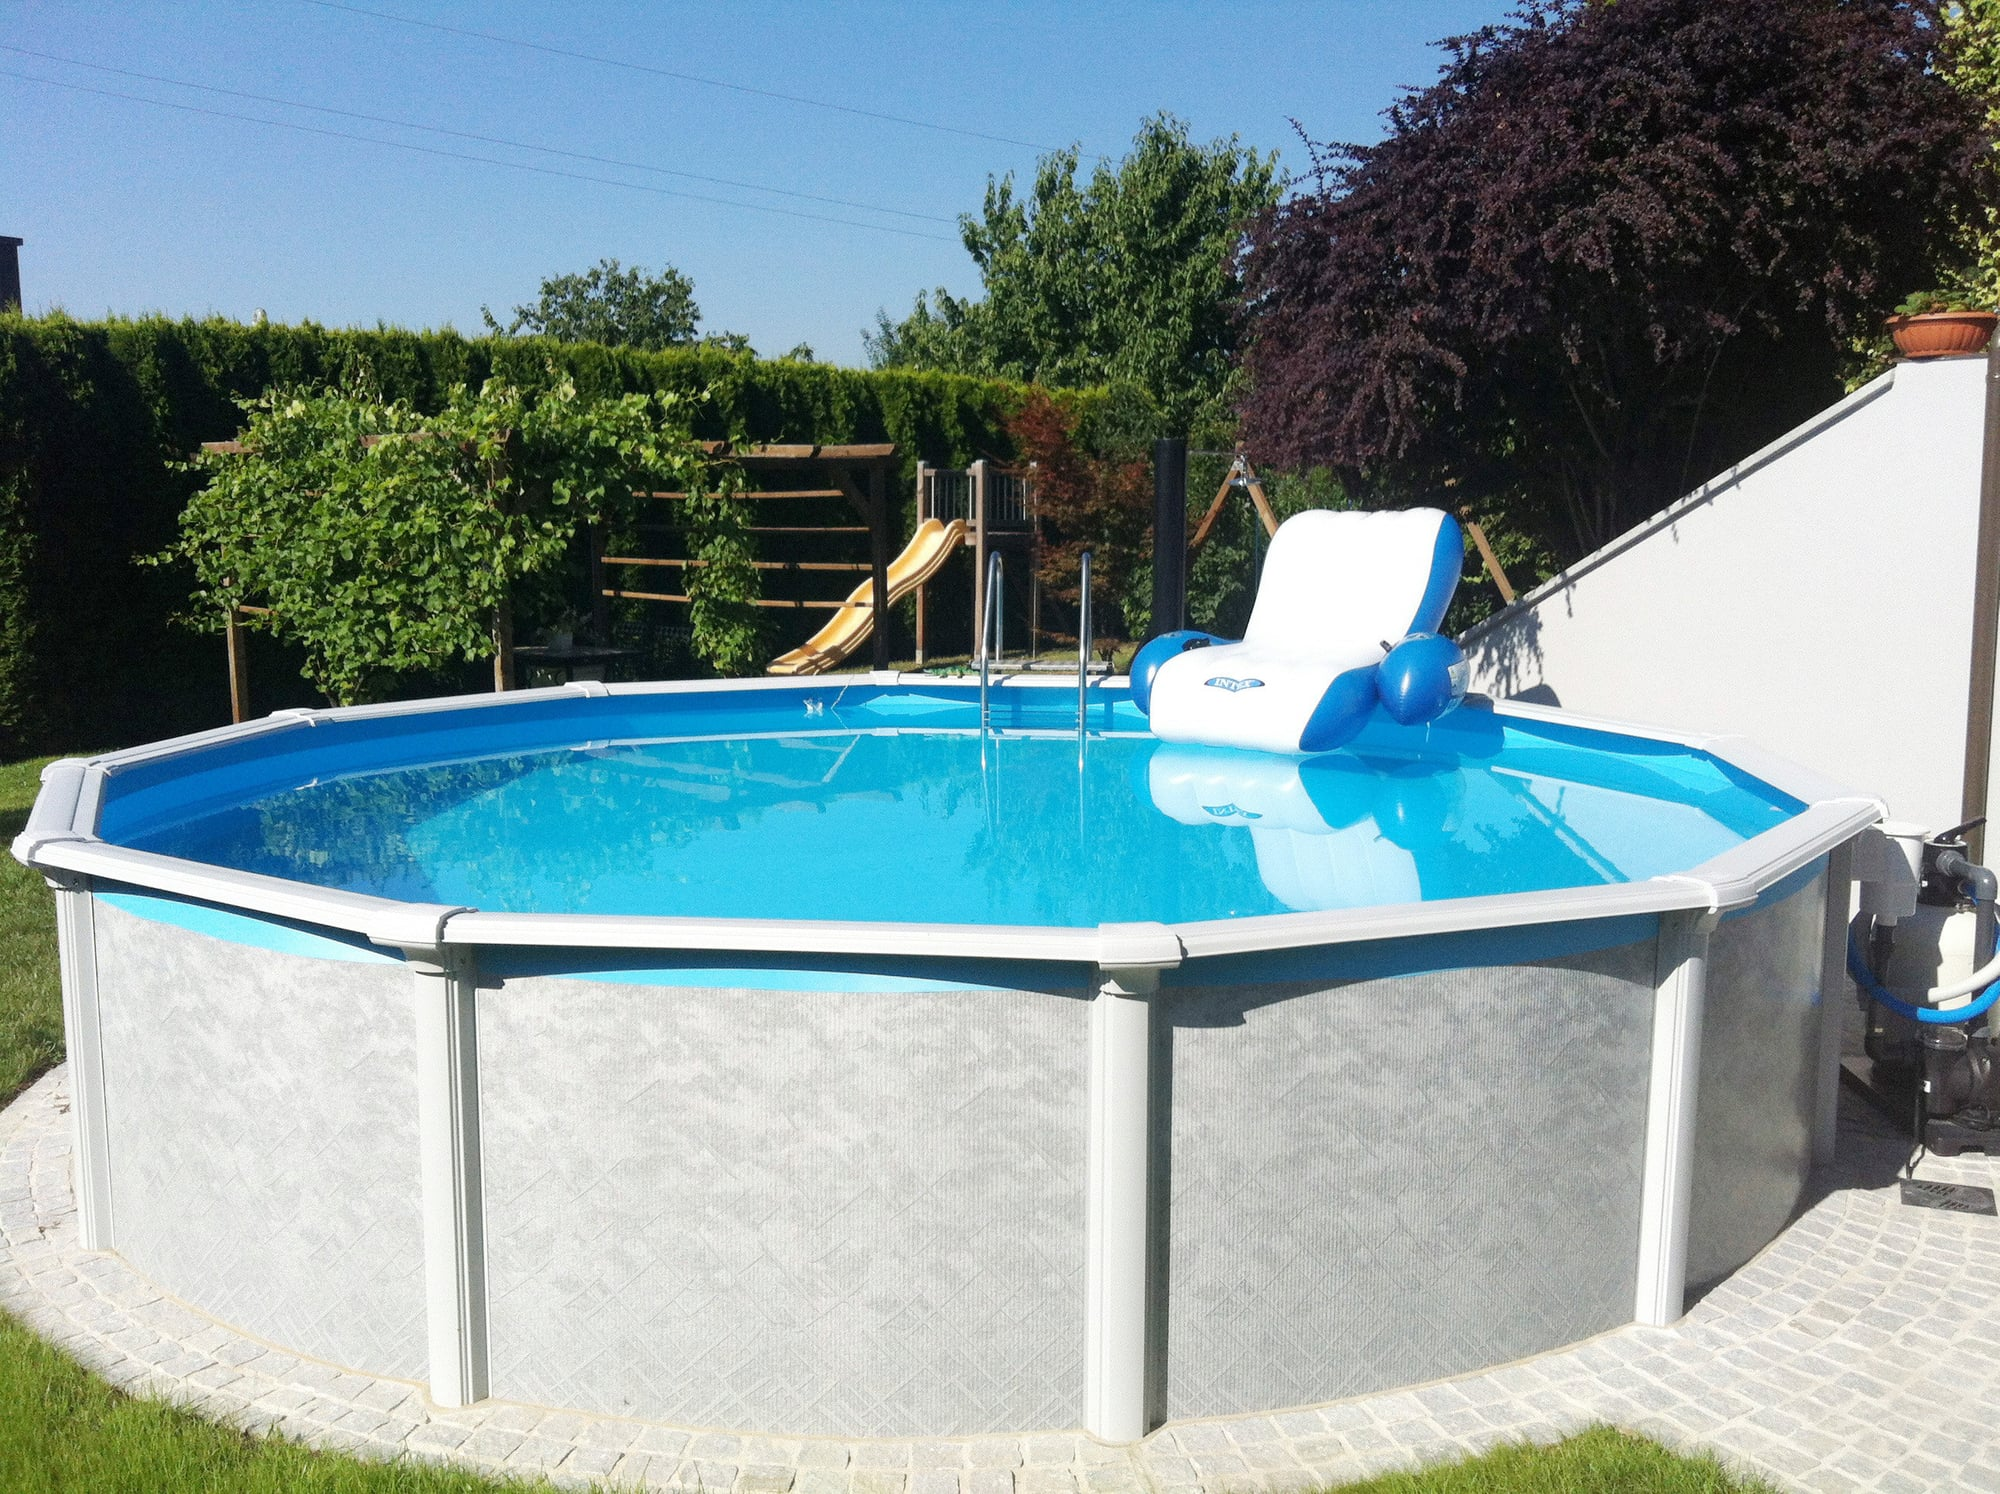 Pool Filteranlage Winter Steinbach Grande Pool Set Rund Ø 549 X 135 Cm Pools Shop